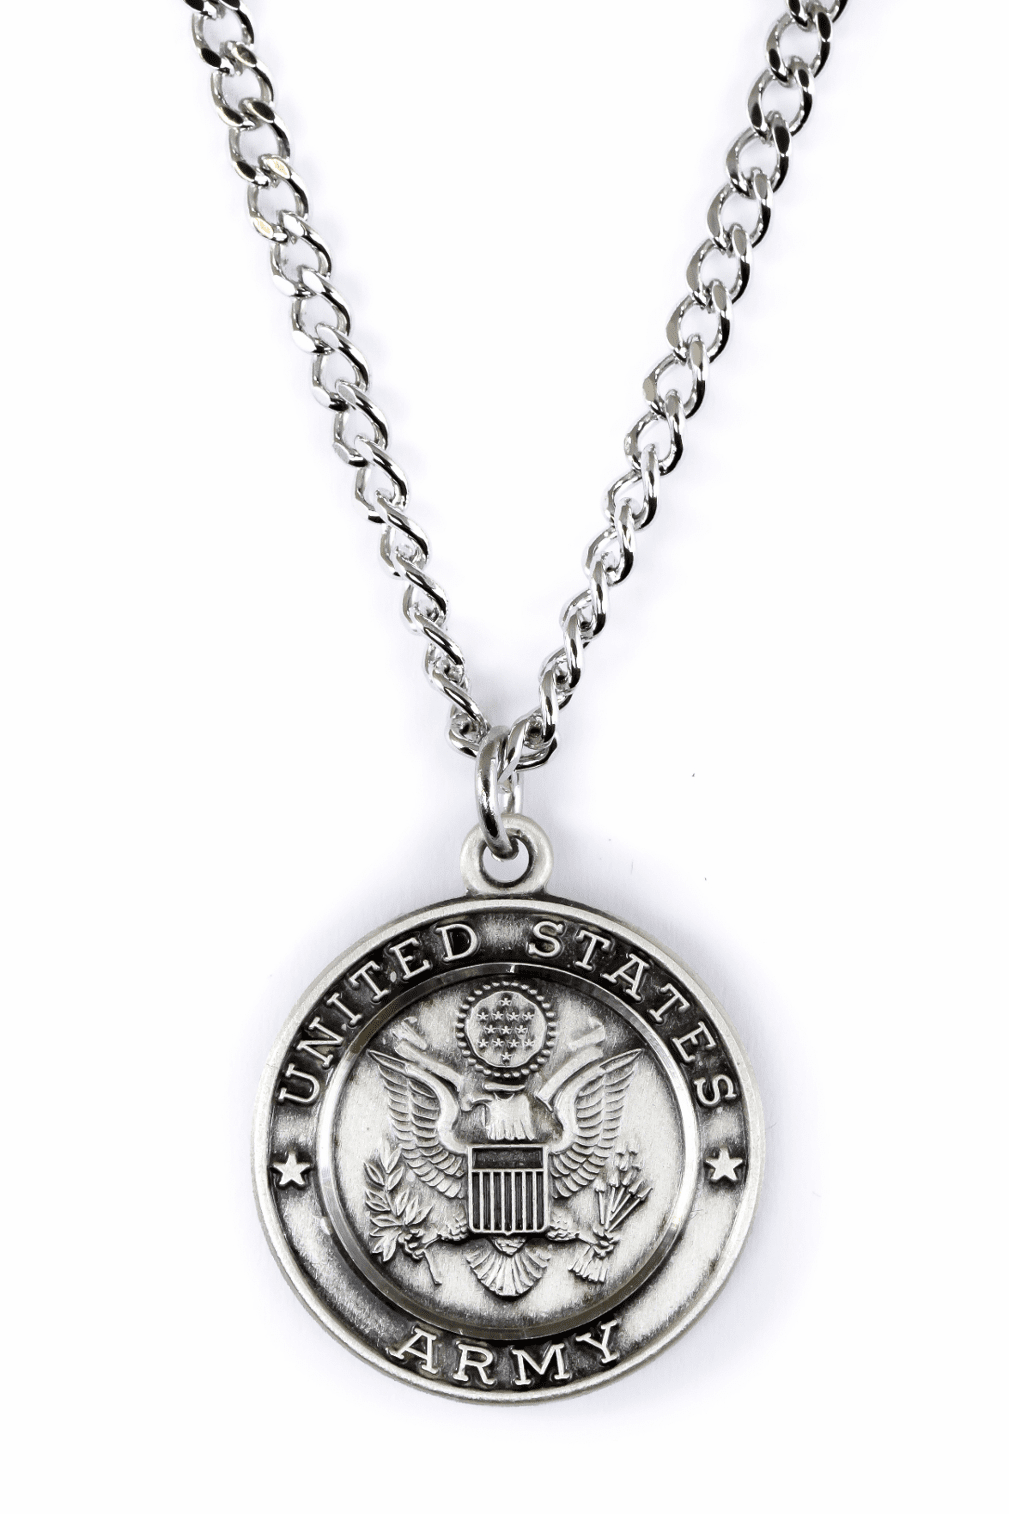 Jeweled Cross Sterling Silver Army St. Michael Archangel Medal